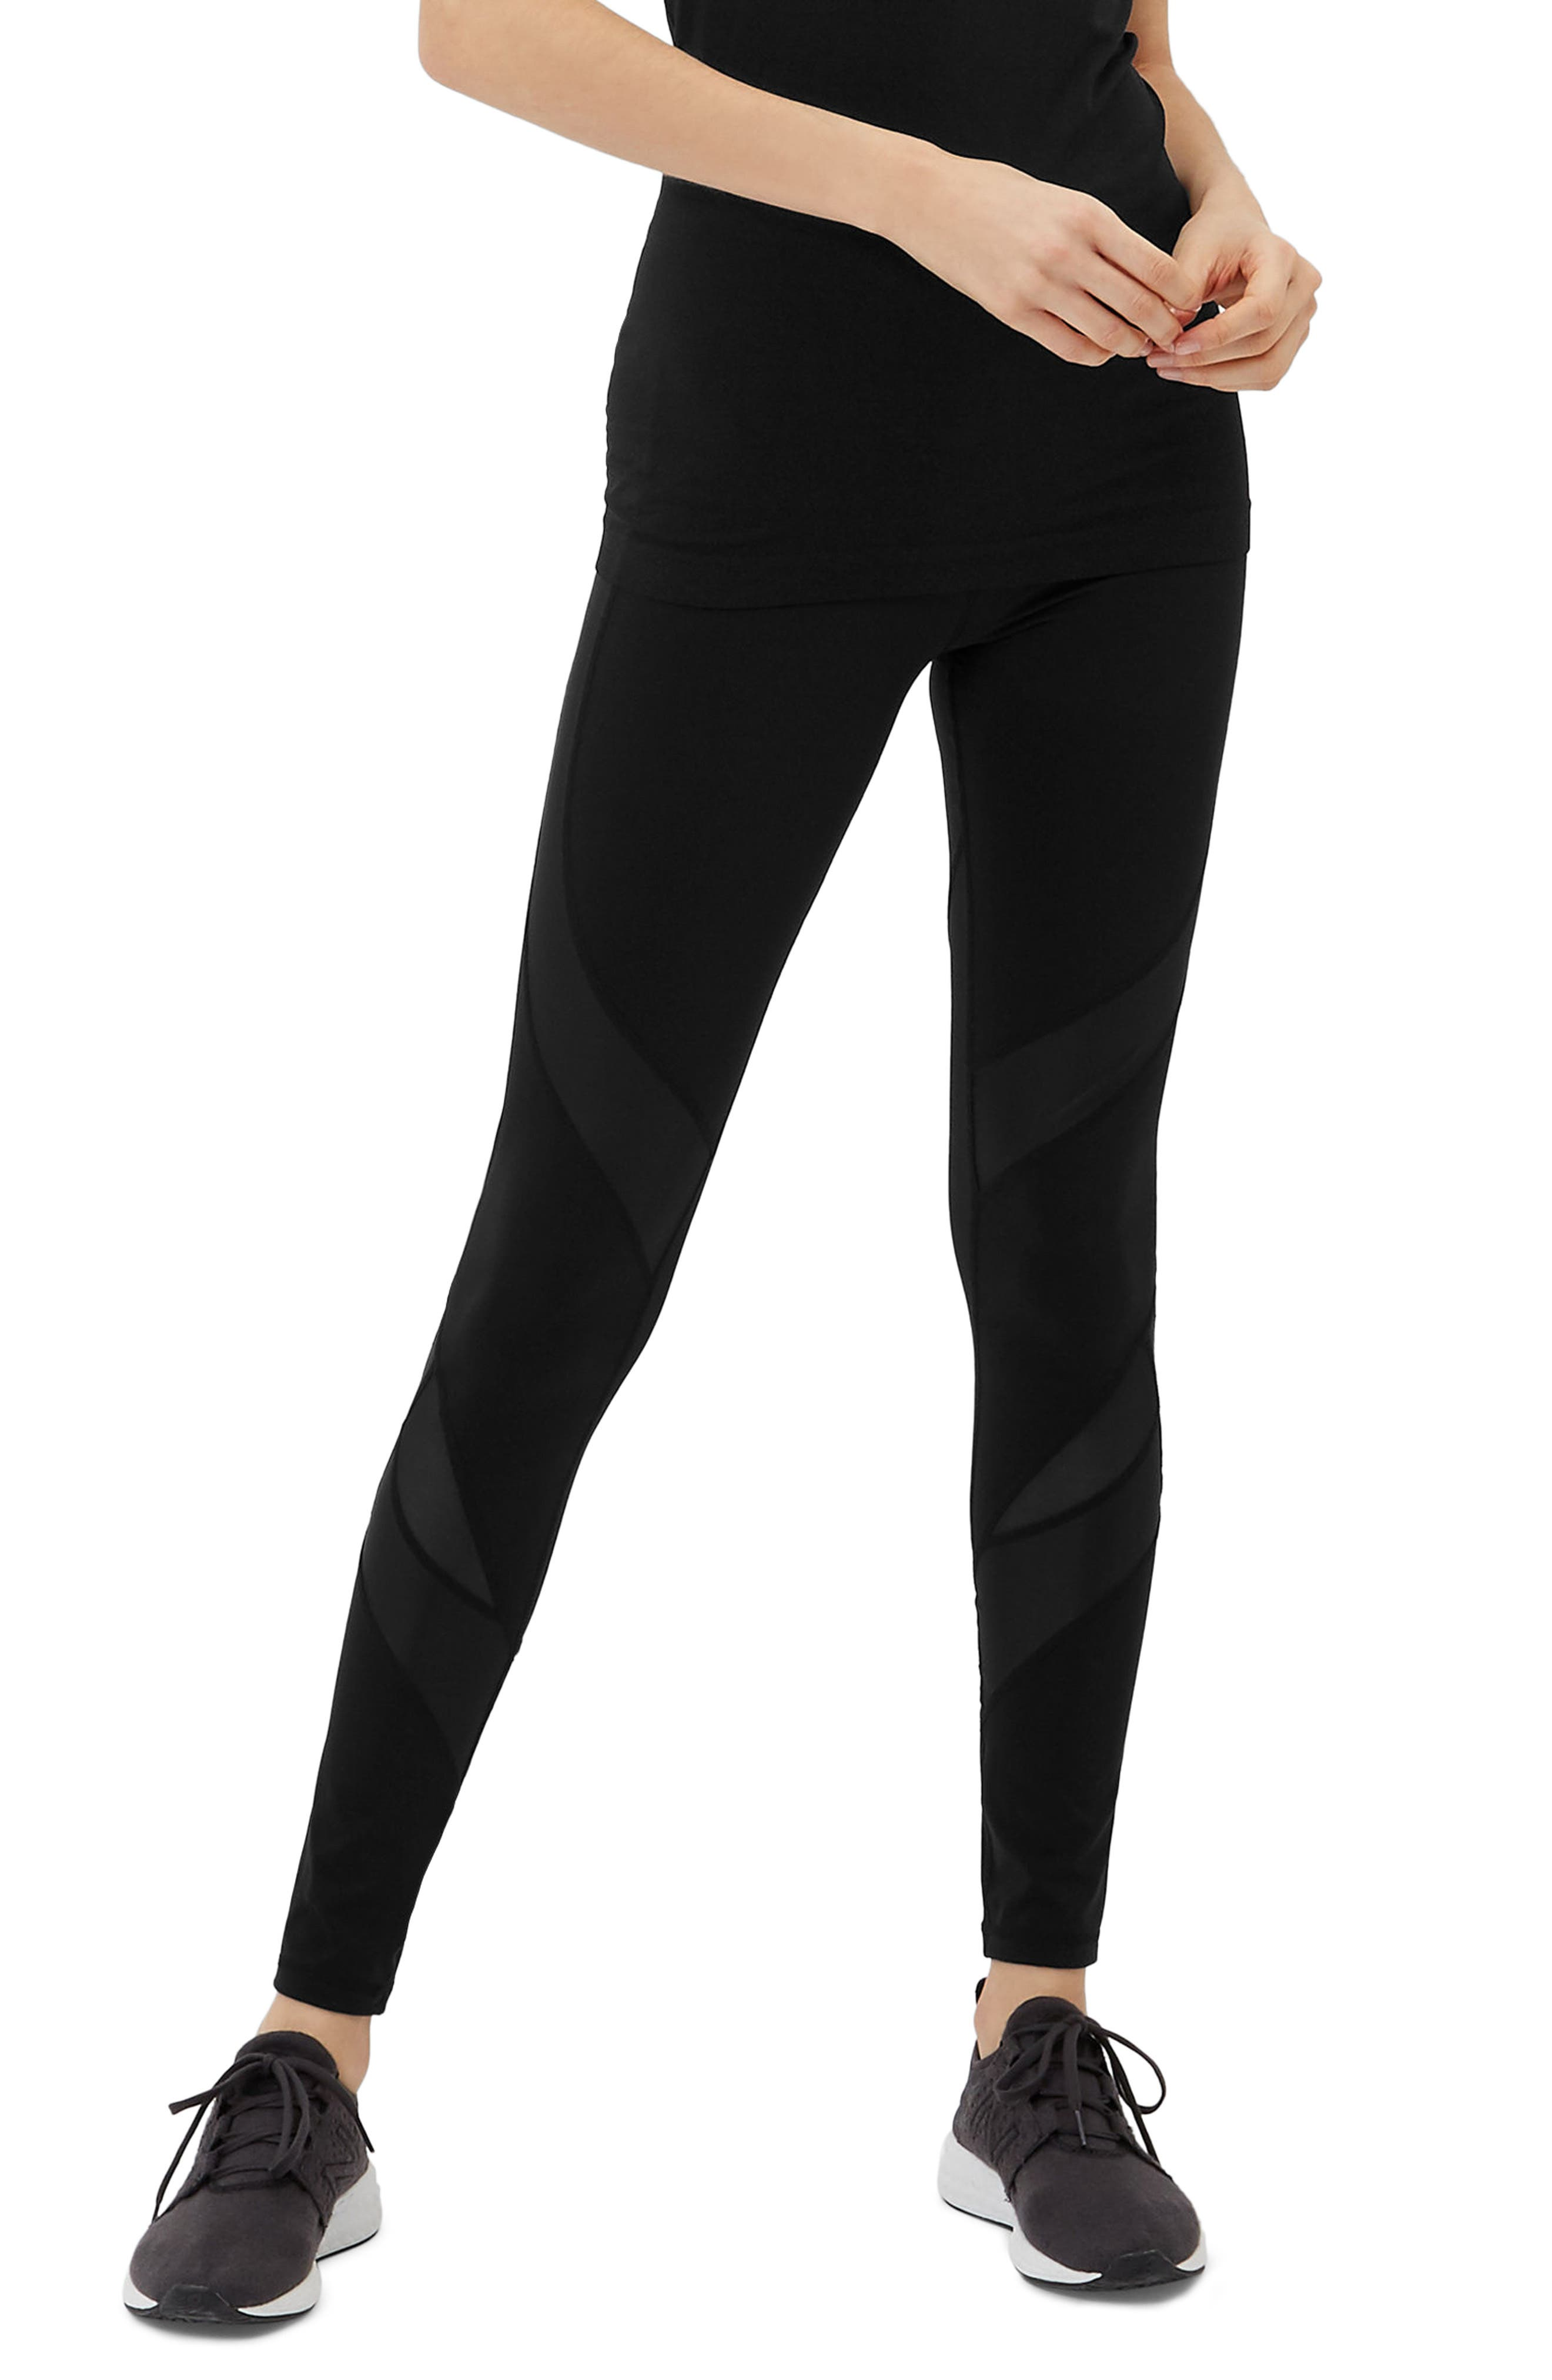 Wetlook Run Leggings,                             Main thumbnail 1, color,                             BLACK